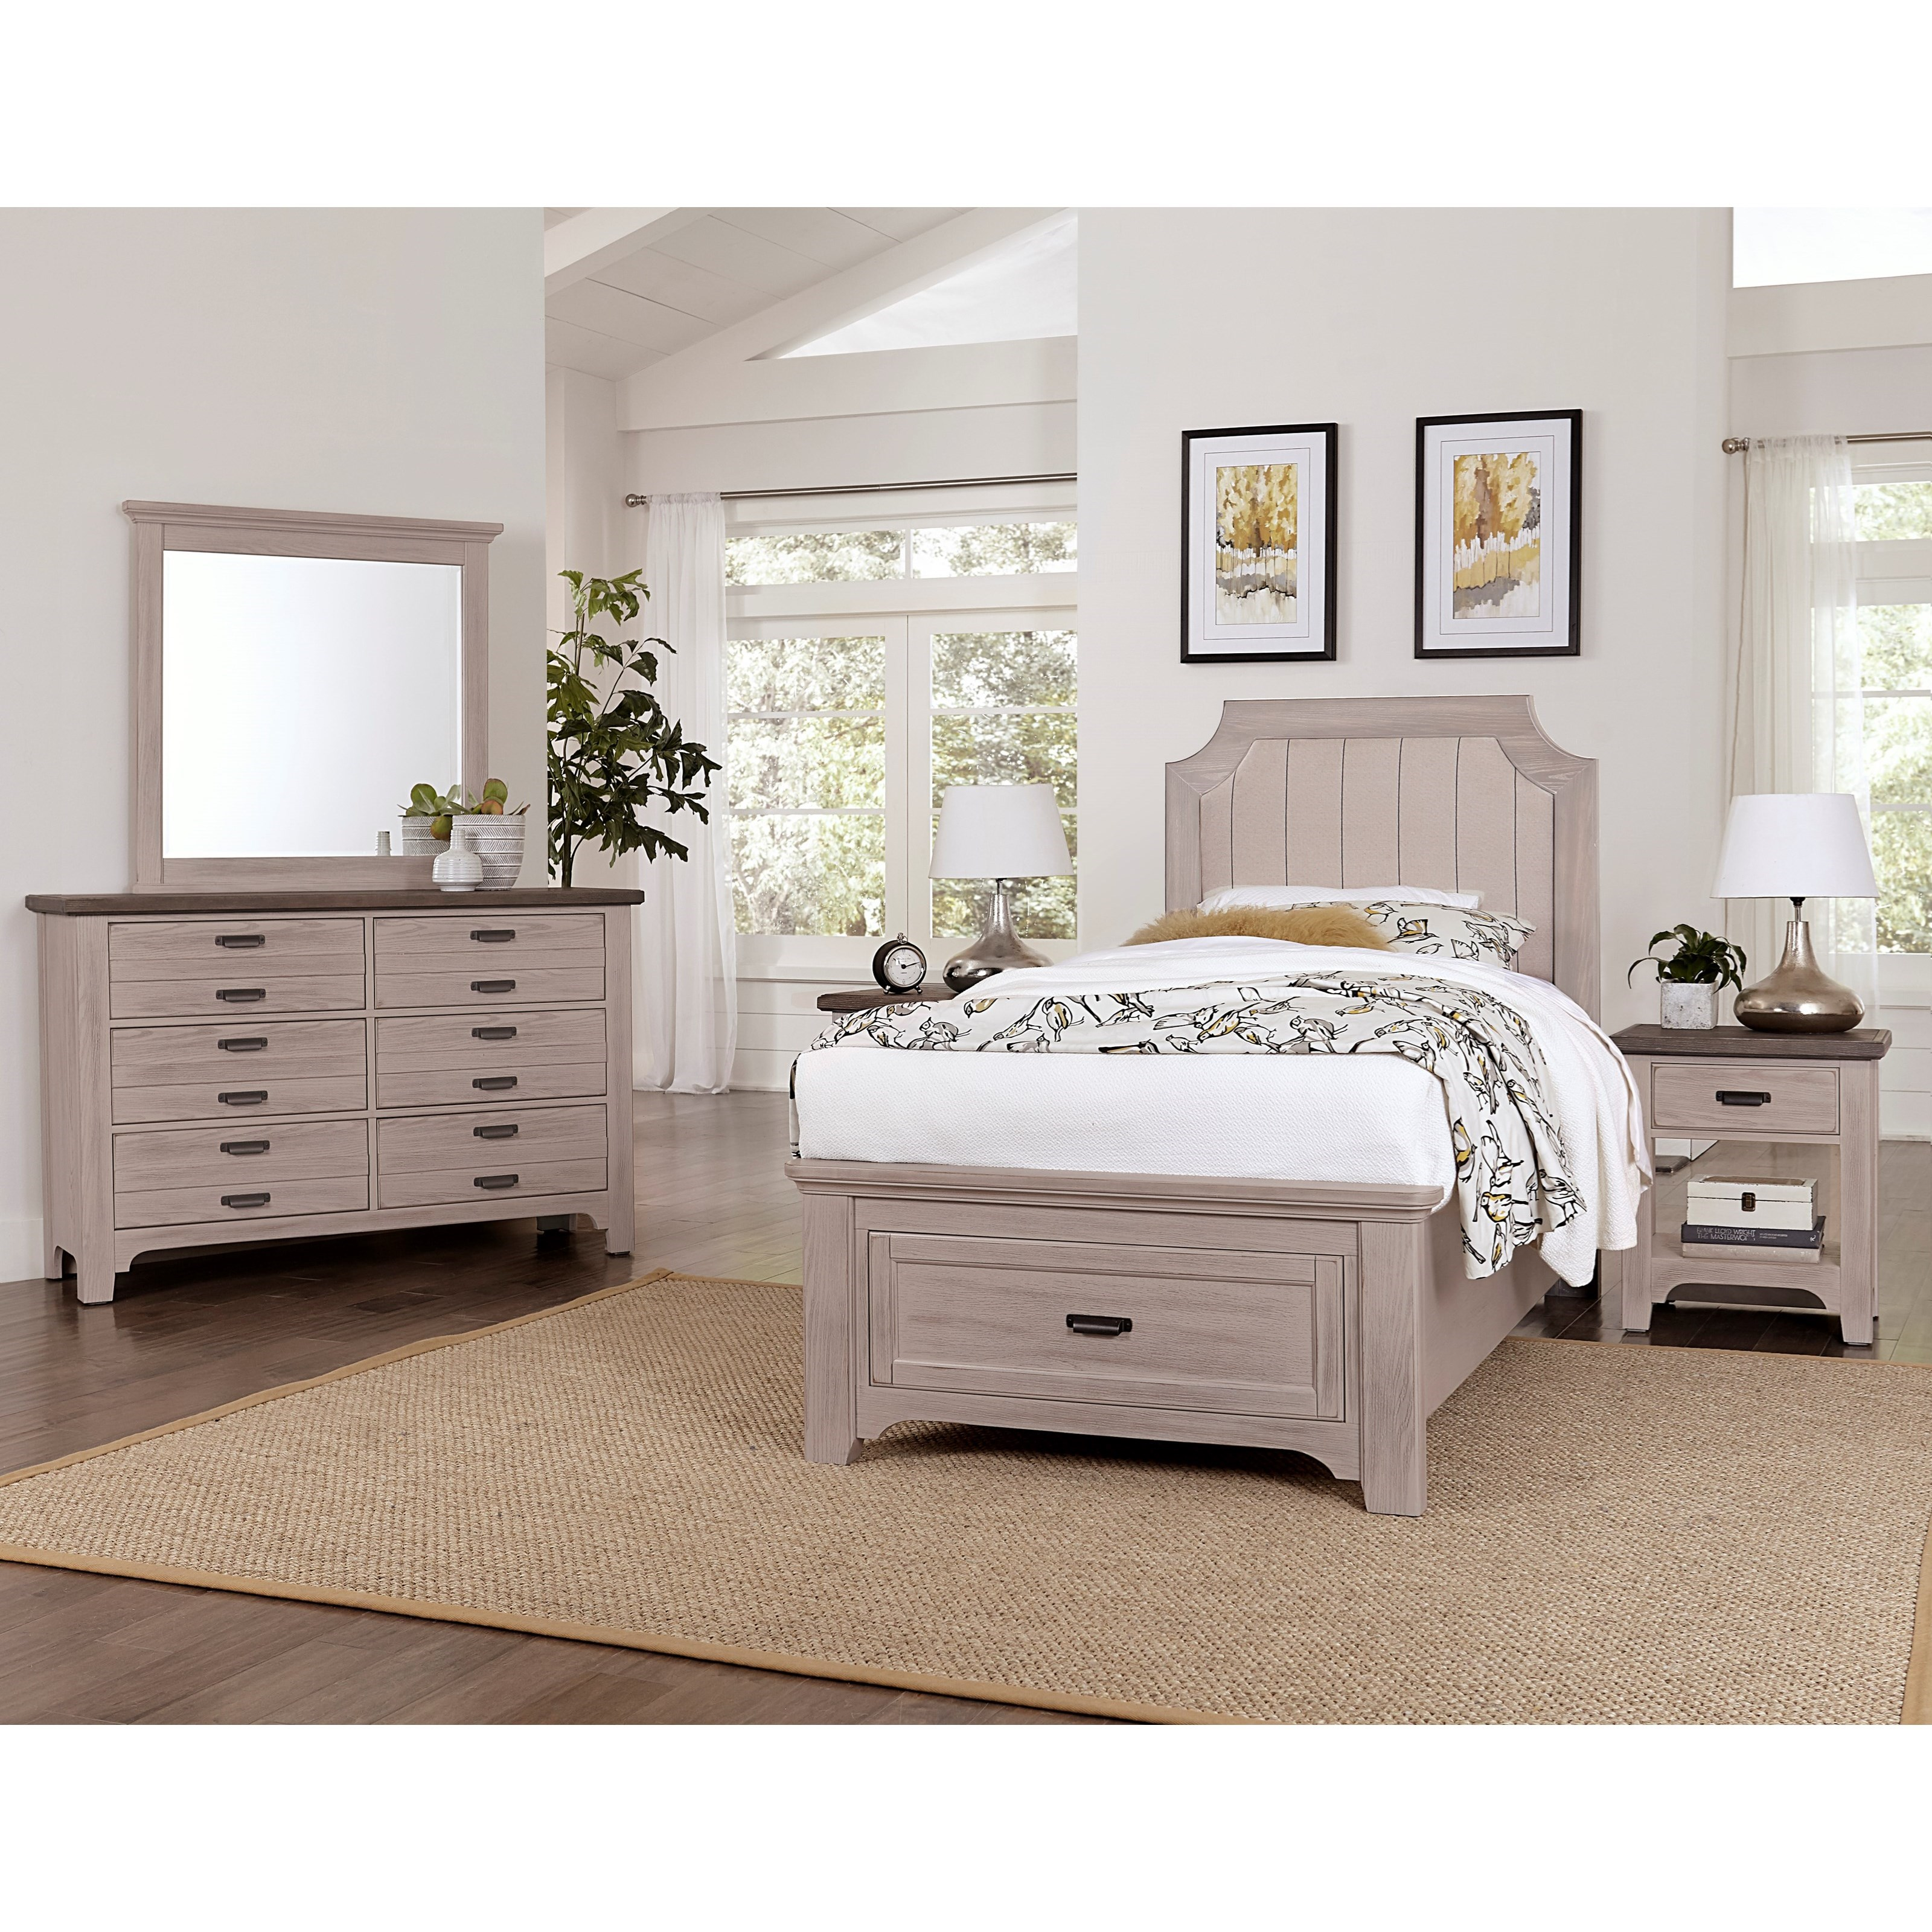 Bungalow Full Bedroom Group by Vaughan-Bassett at Crowley Furniture & Mattress